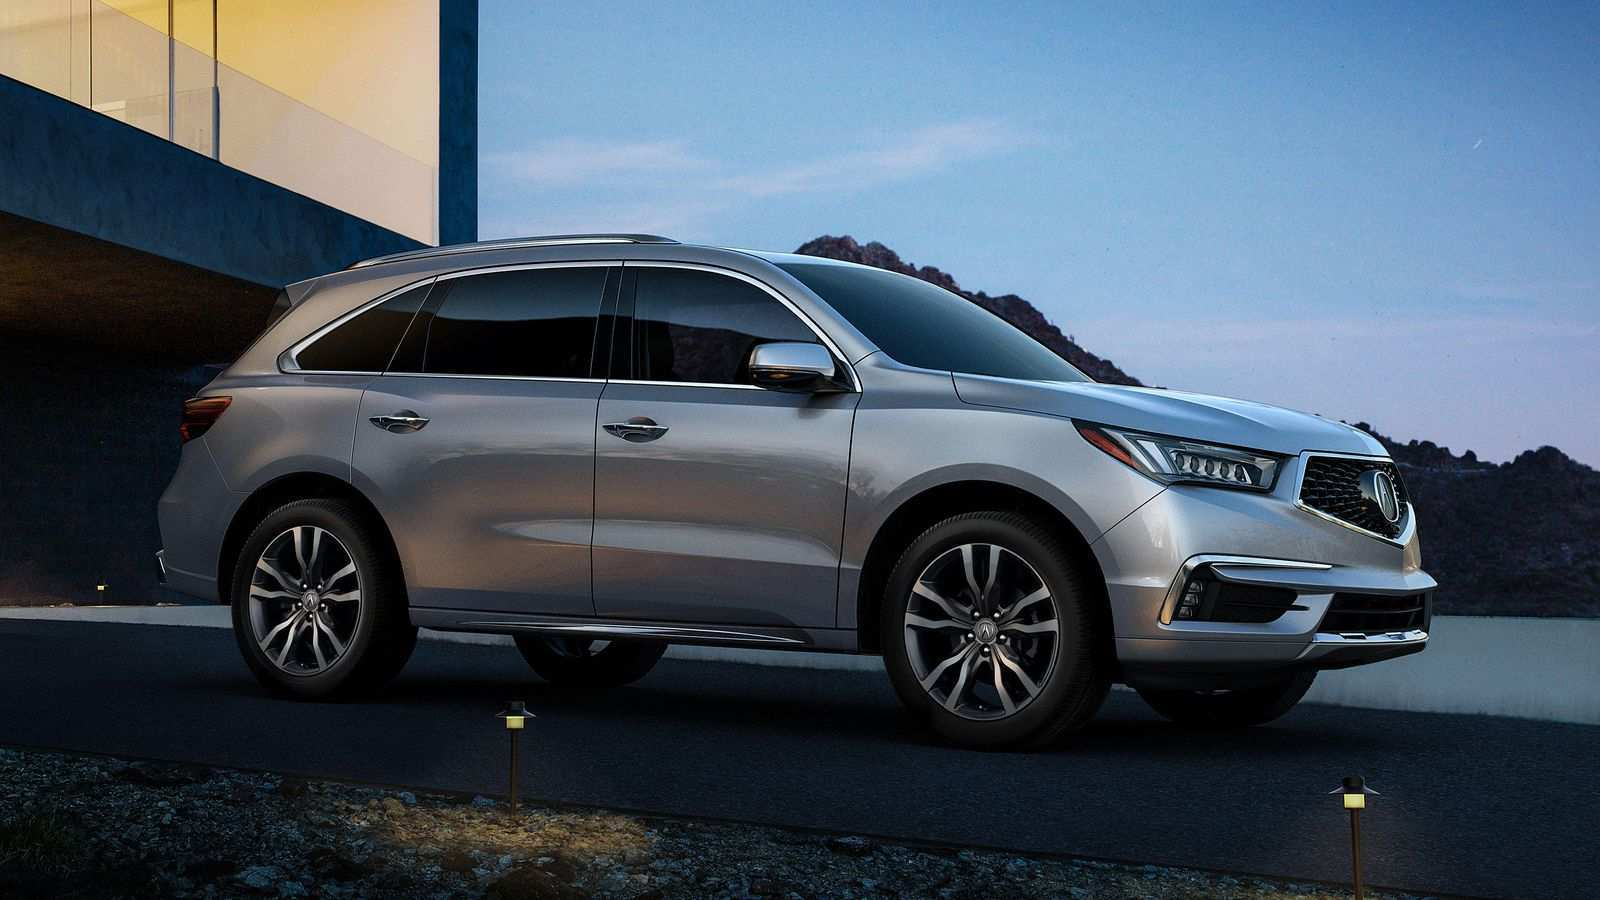 2020 Acura Mdx Rumors Price, Design and Review